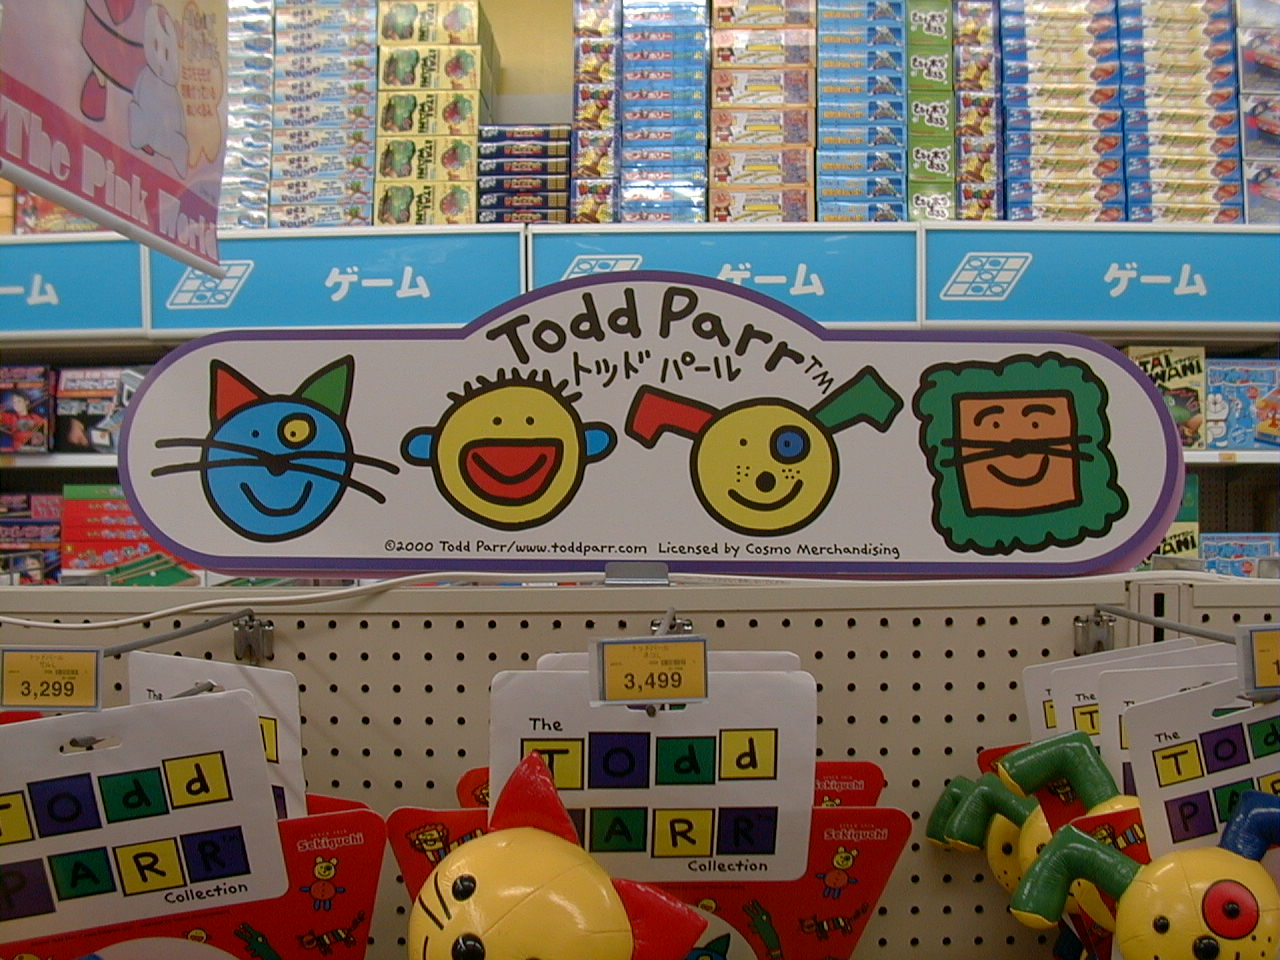 Todd Parr Toys on Shelves